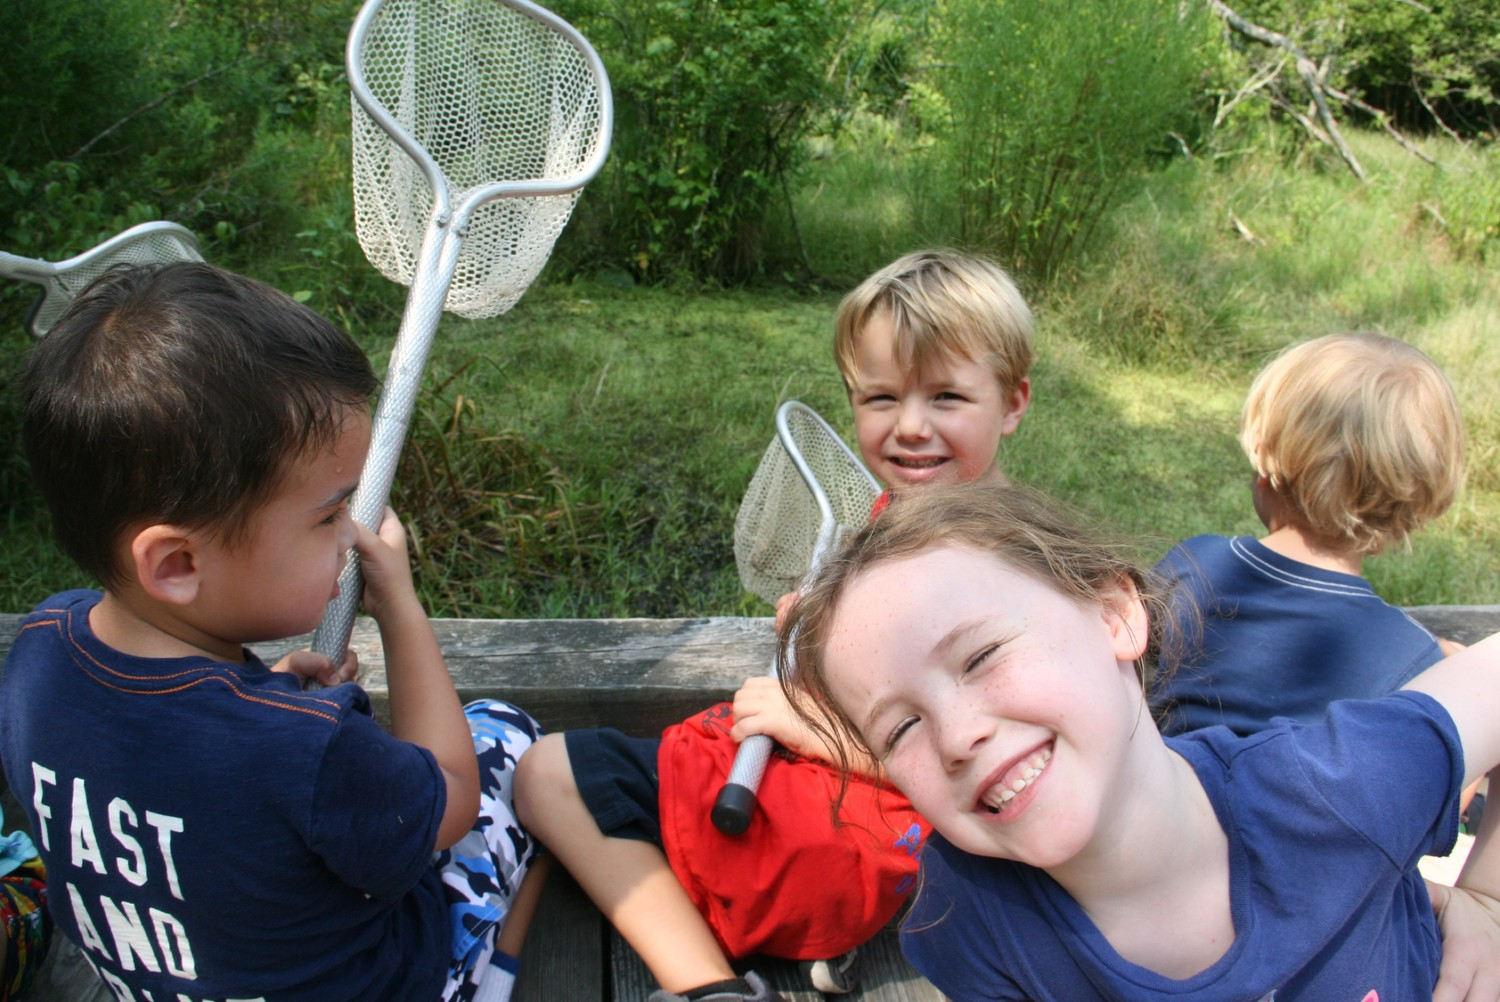 Grab a net and head out with Audubon on April 17 for a Swamp Romp in Bristol!